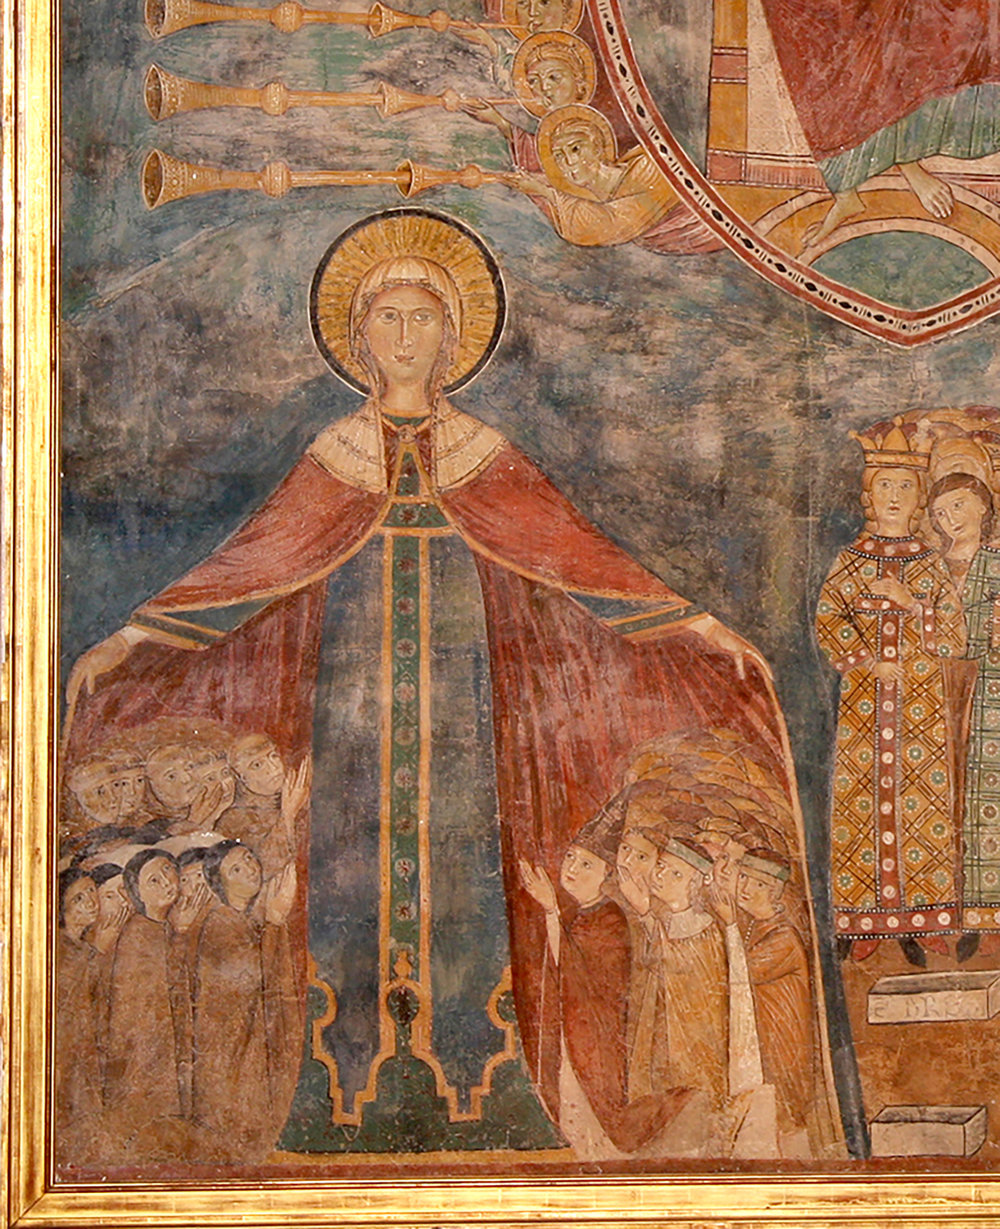 Figure 4. Detail of figure 2:  The Second Coming of Jesus —Mary sheltering resurrected souls beneath her cloak. Photograph by Edwin Herder.